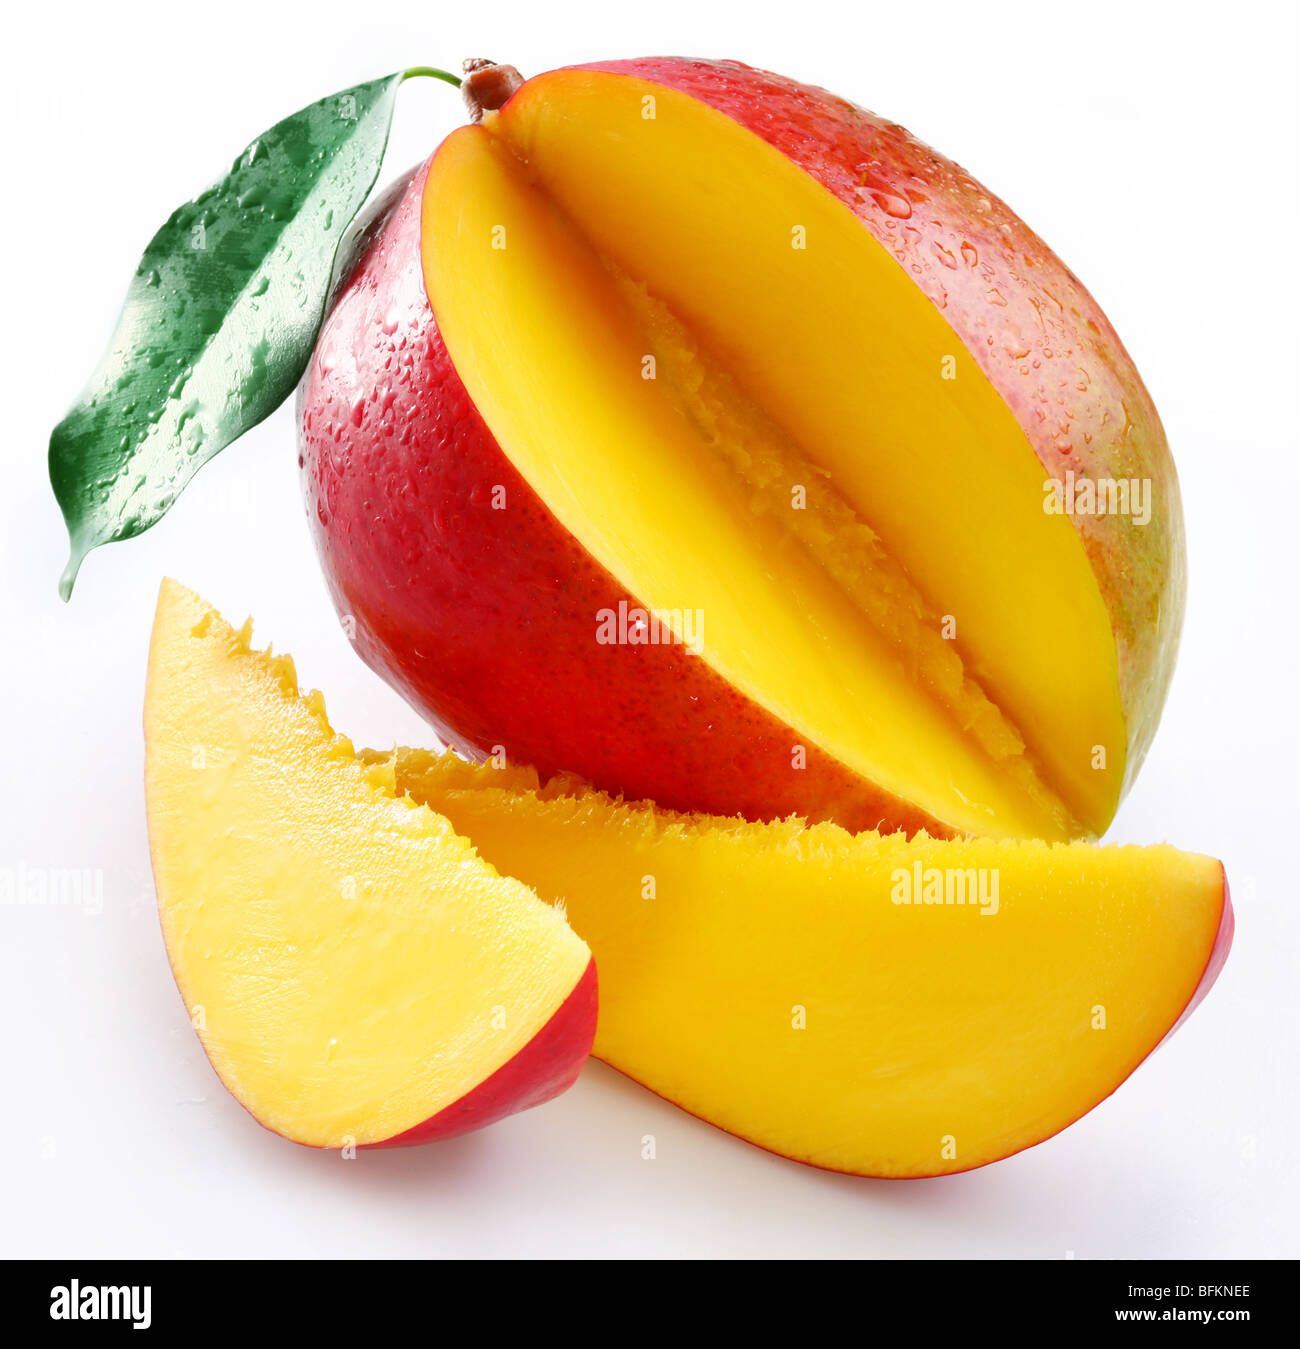 Cut mango with its section on a white background - Stock Image